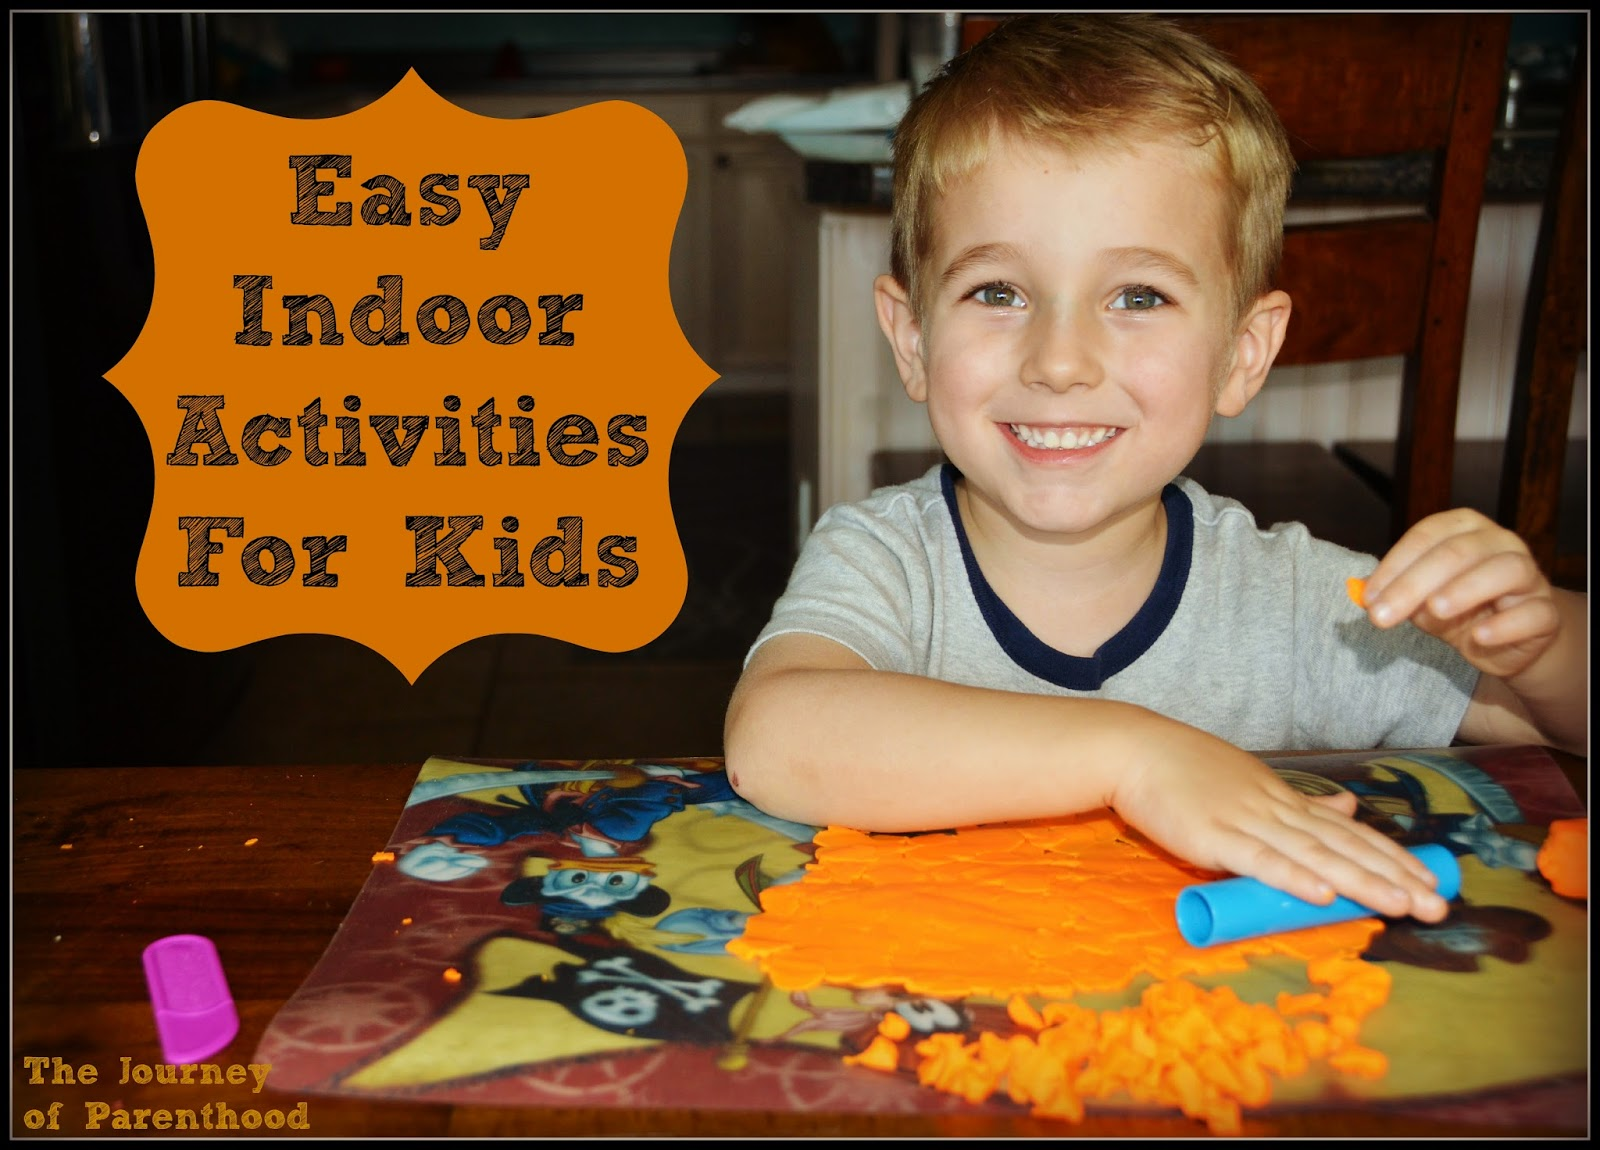 Easy Indoor Activities